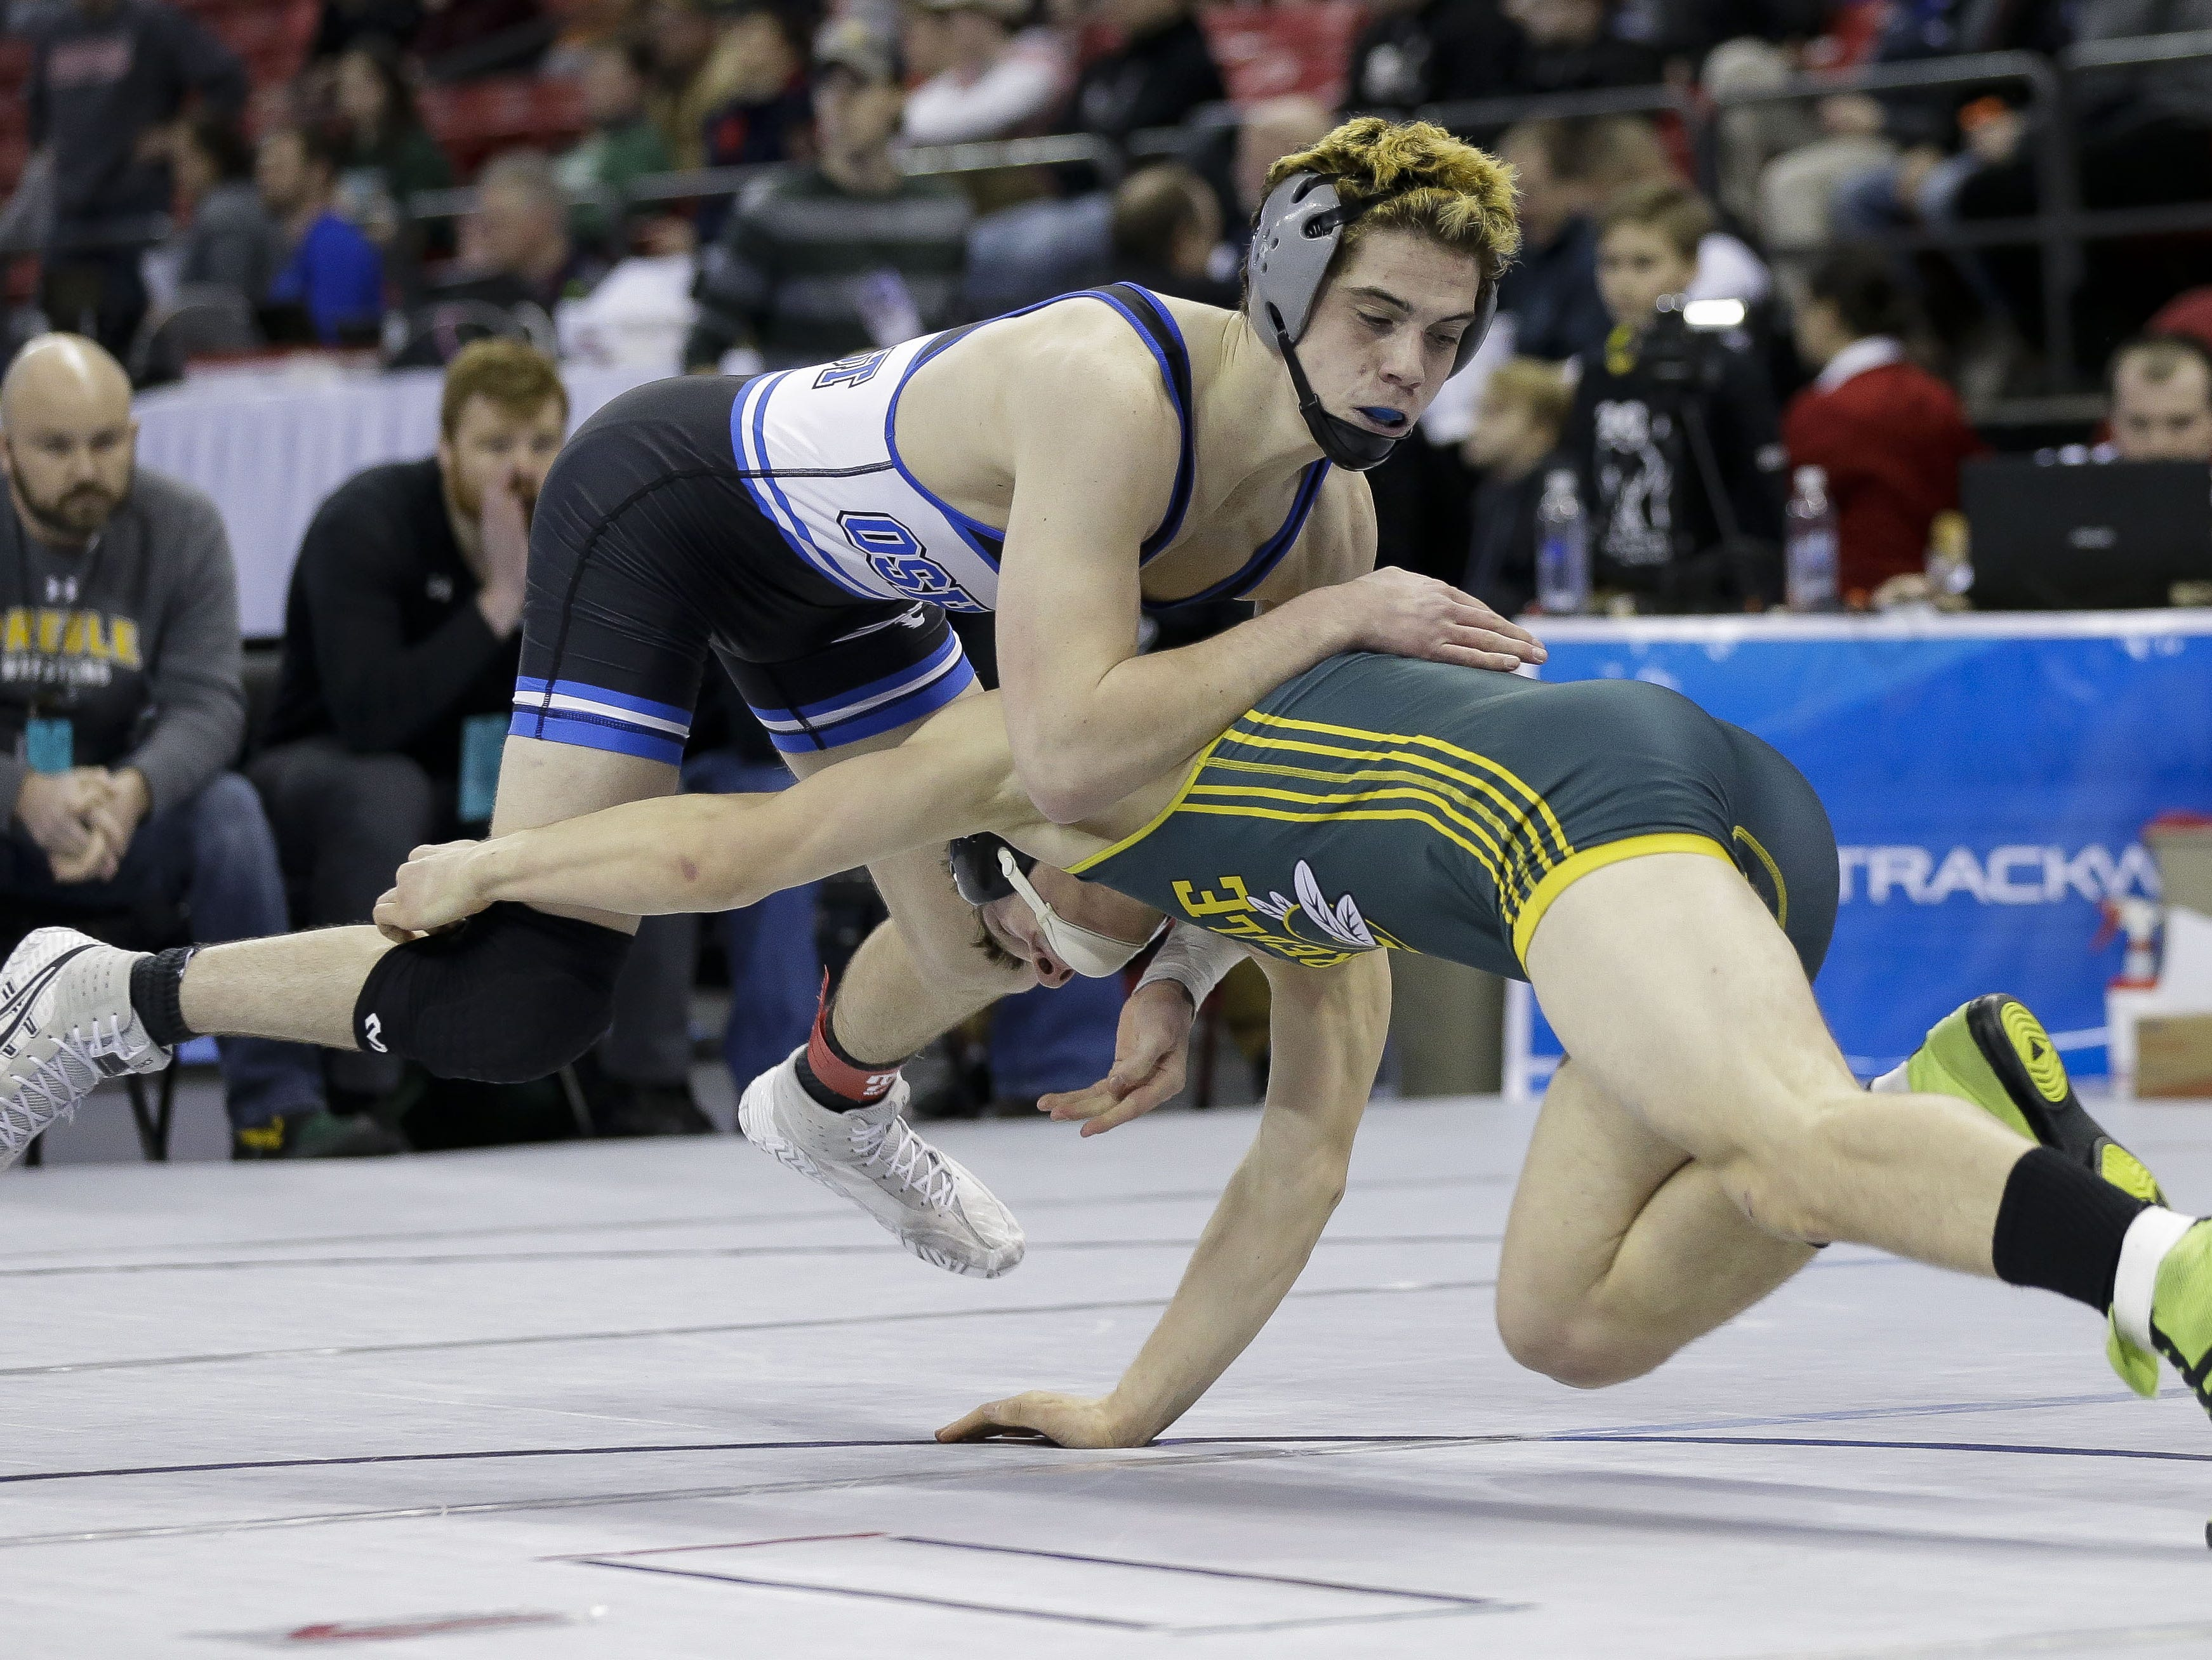 Oshkosh West's Connor Collins scrambles to avoid a take down against Green Bay Preble's Kade Cummings in a Division 1 152-pound preliminary match during the WIAA state wrestling tournament on Thursday, February 21, 2019, at the Kohl Center in Madison, Wis. Tork Mason/USA TODAY NETWORK-Wisconsin